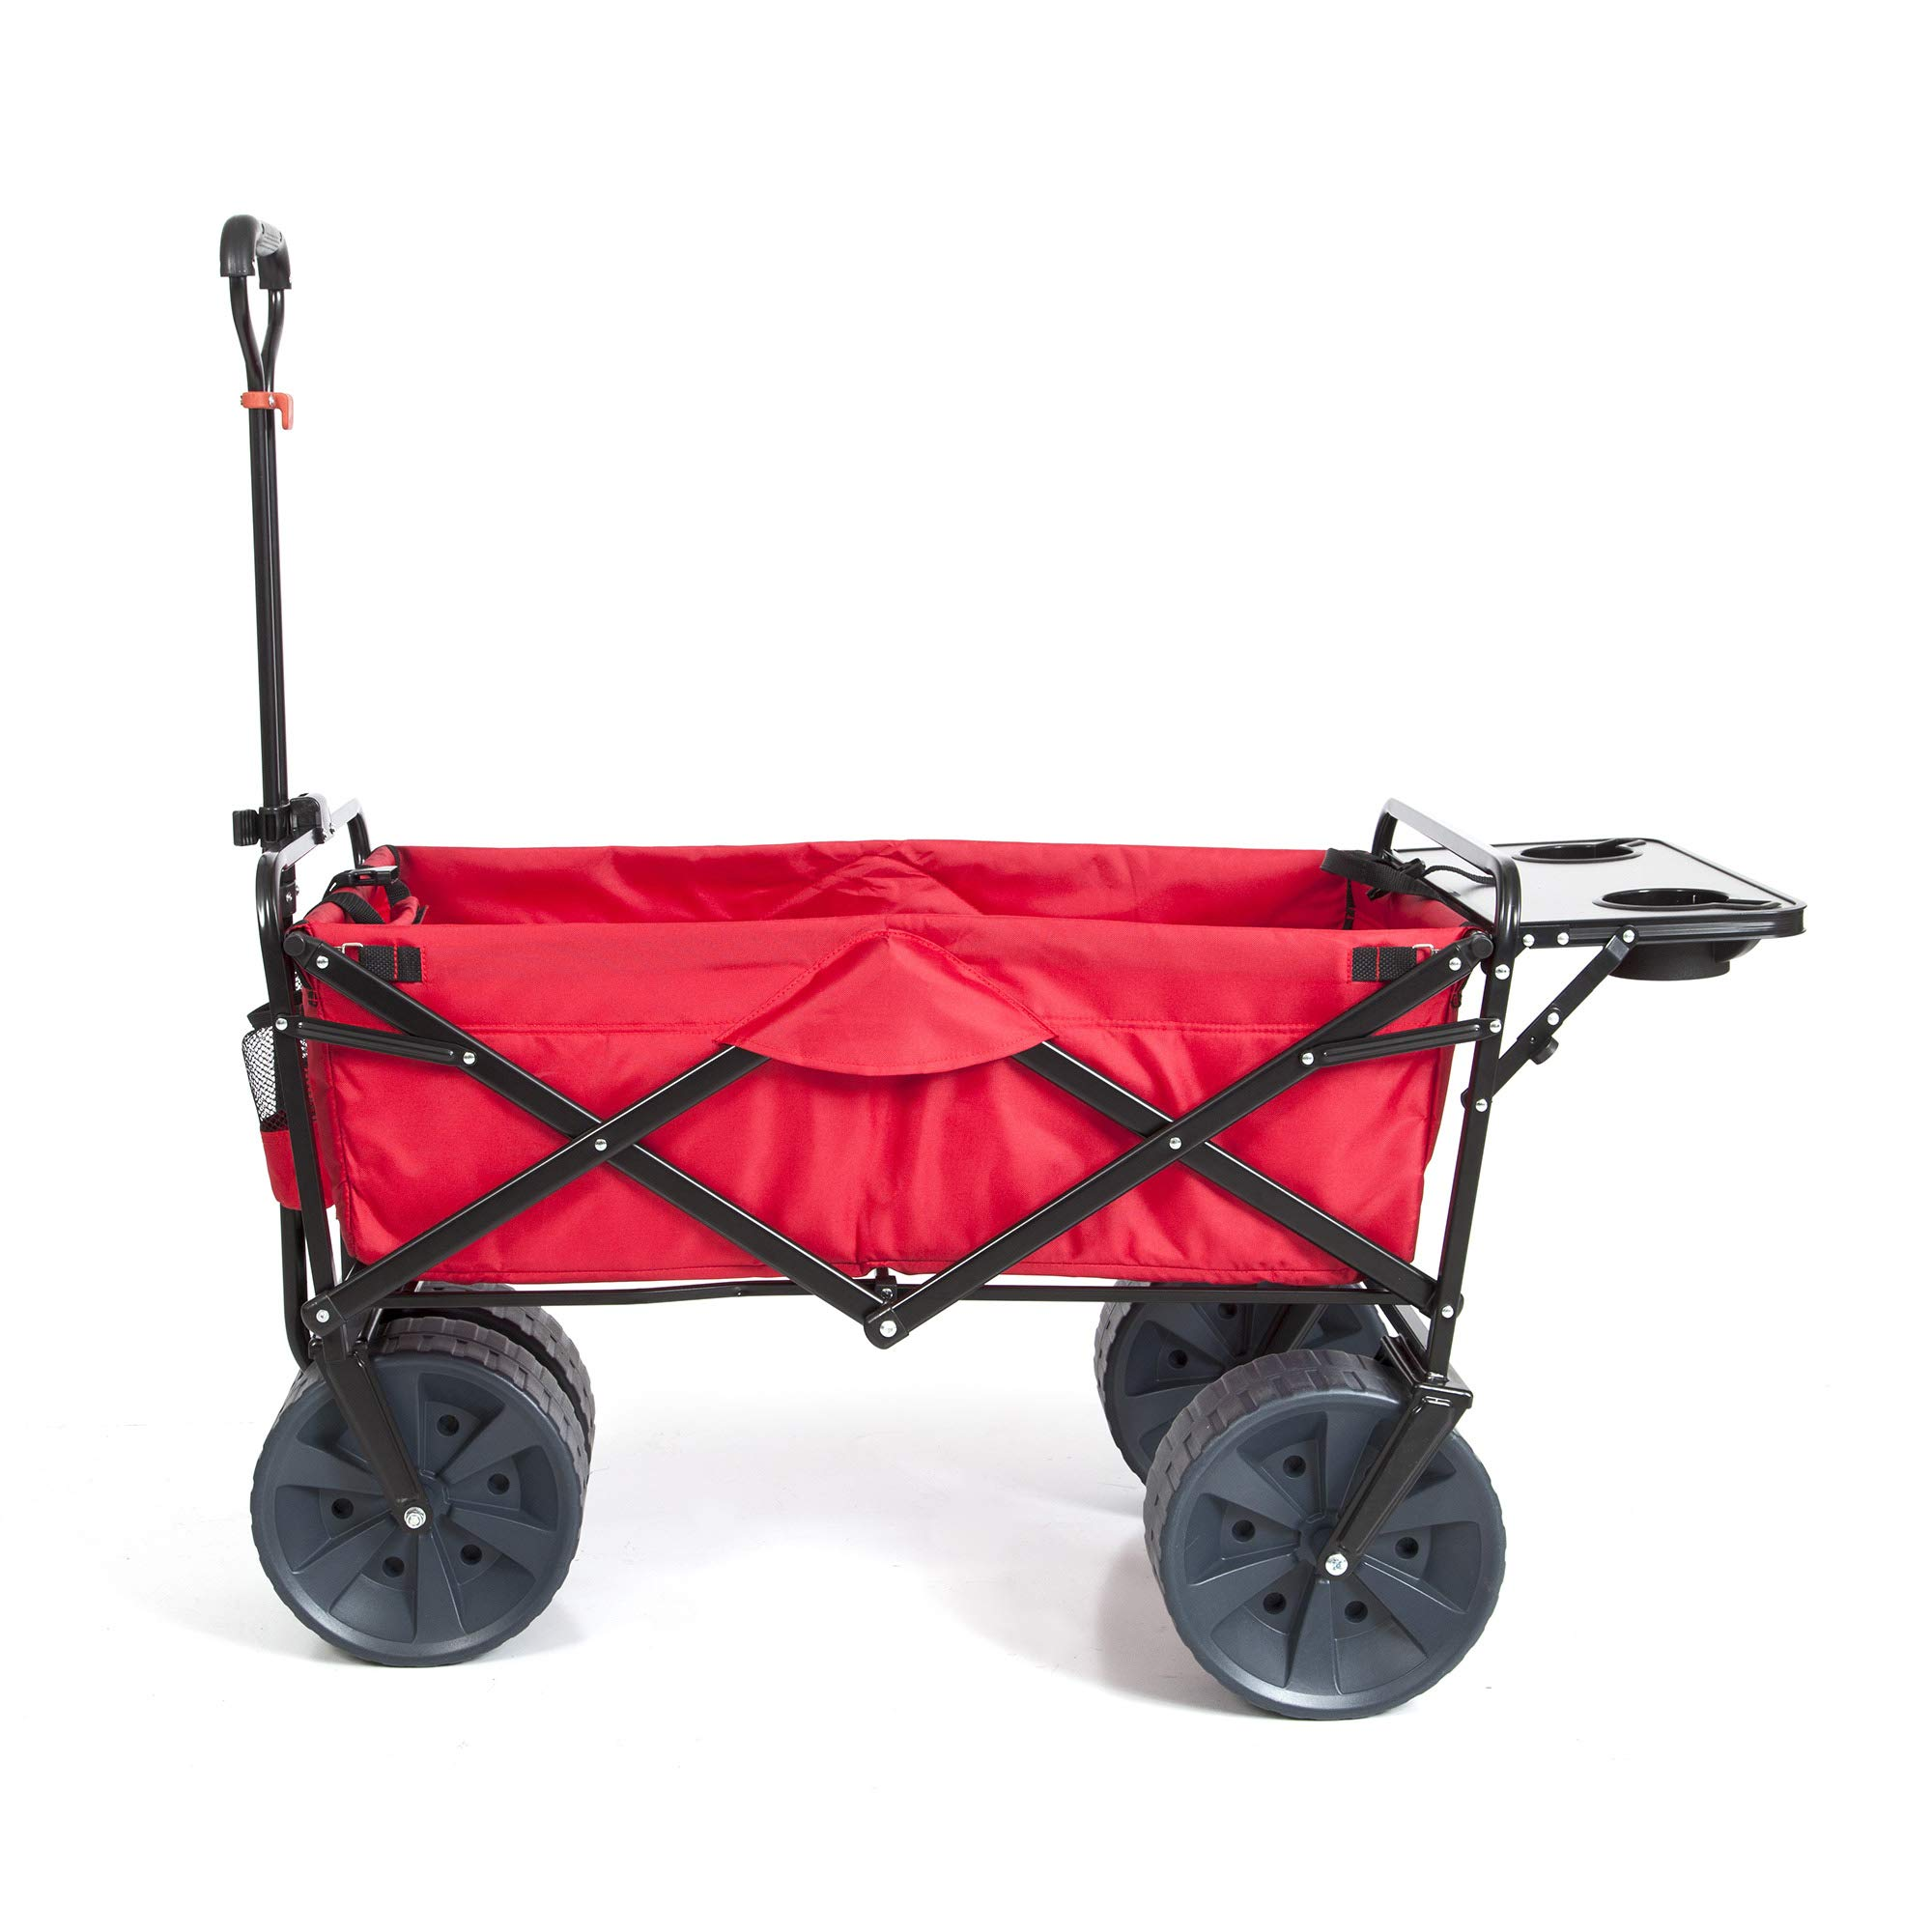 Mac Sports Heavy Duty Collapsible Folding All Terrain Utility Beach Wagon Cart with Table (Red/Black)